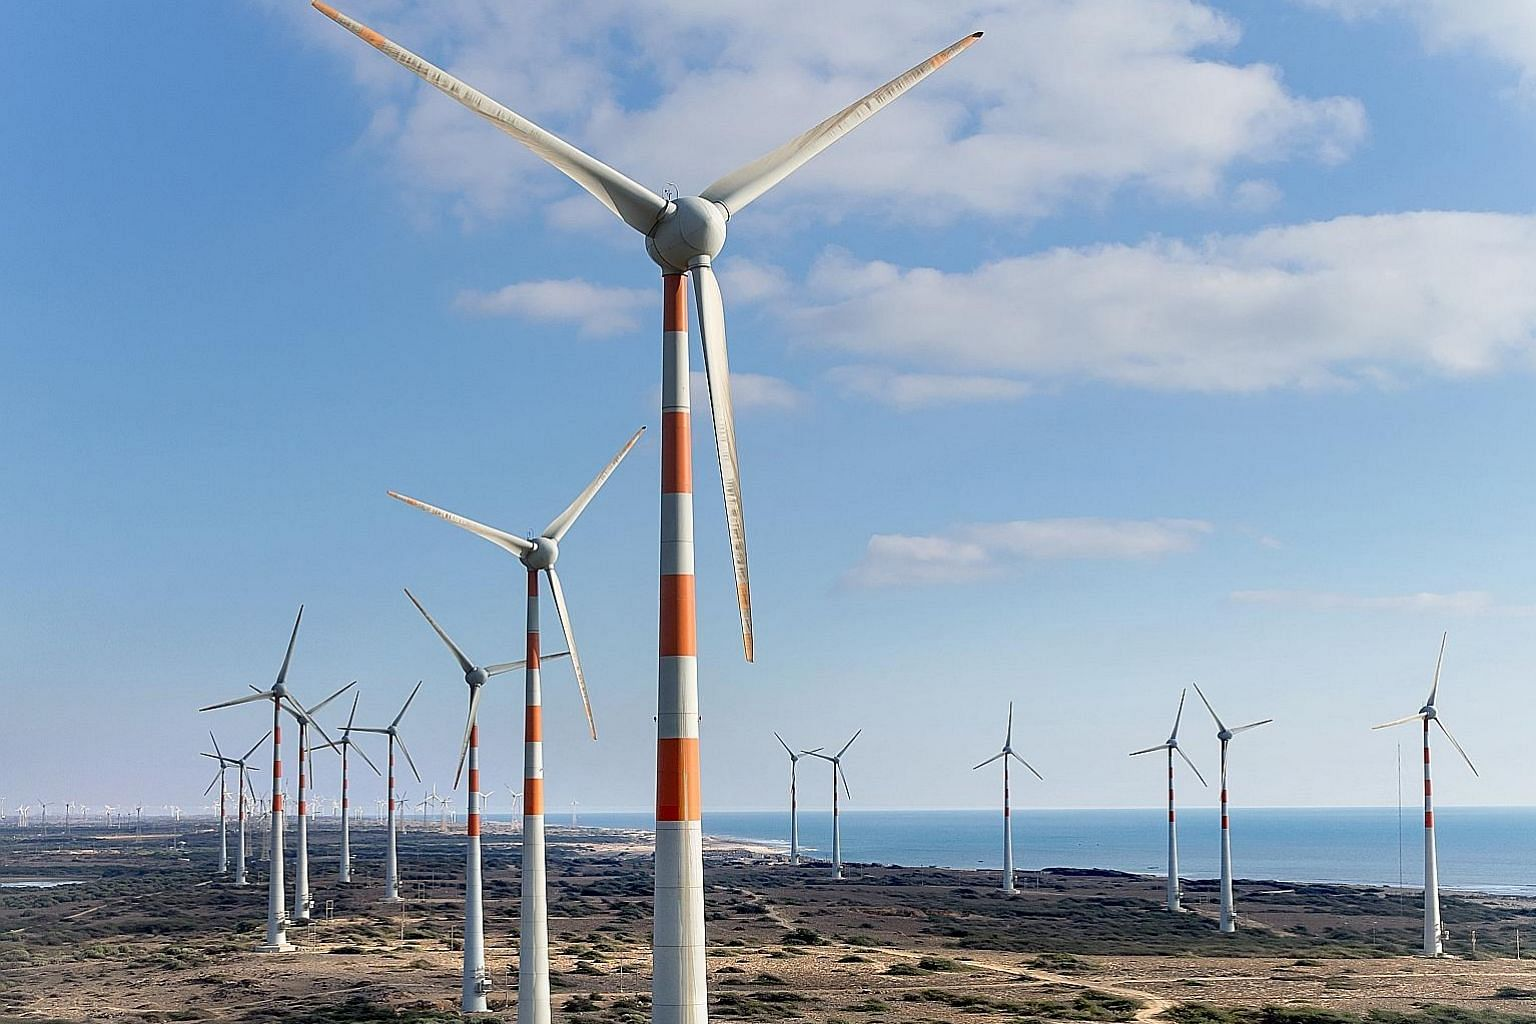 Sembcorp Industries' wind turbines in India. The group is among a number of large Singapore firms to have made significant inroads into developing infrastructure across Asia.